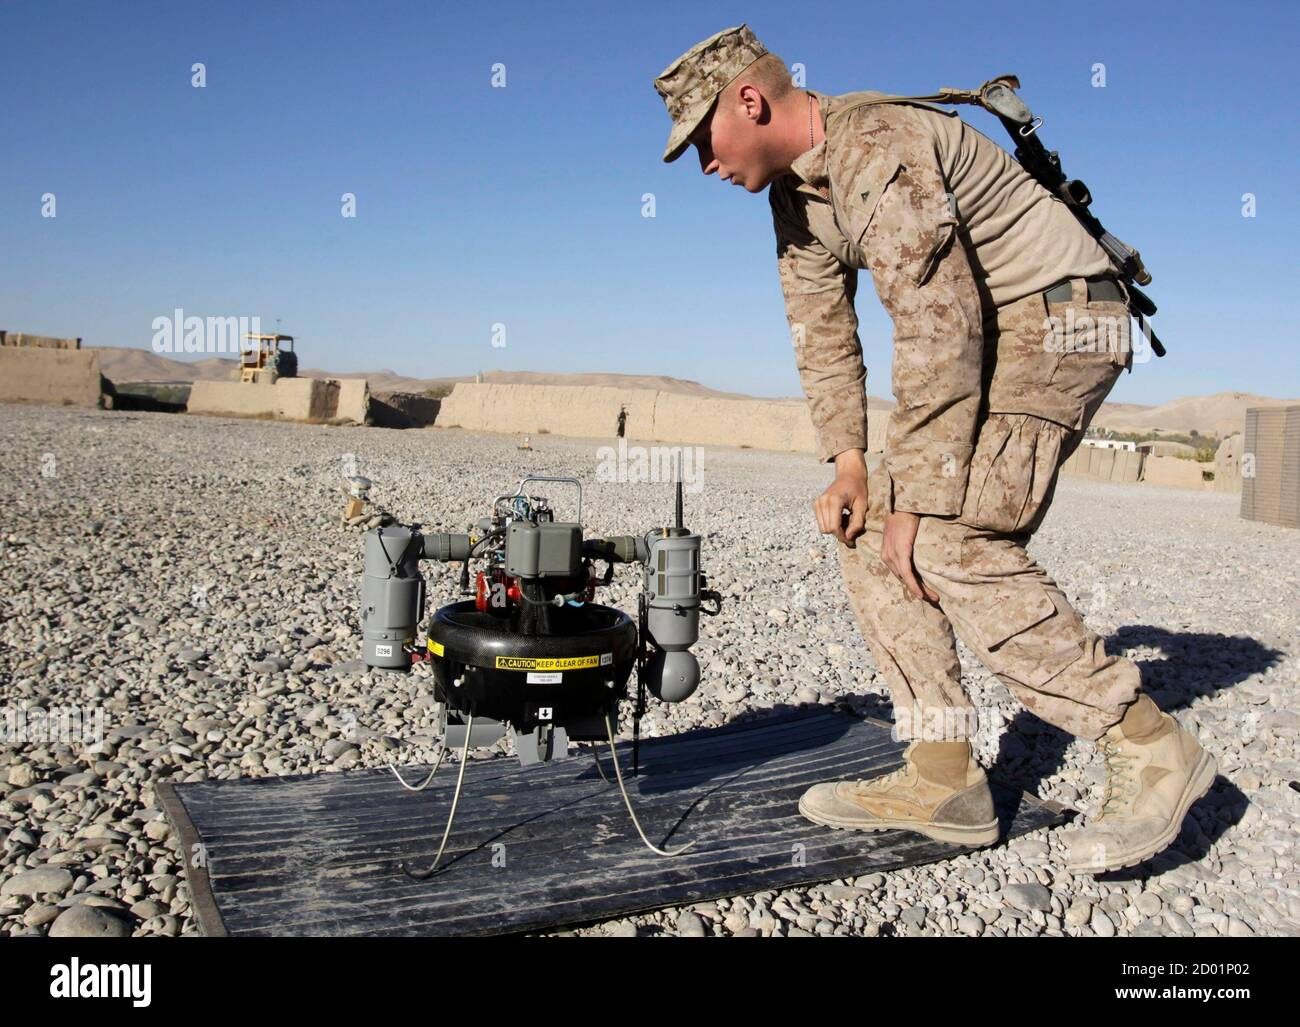 U.S. Marine Lance Corporal Paxton Force, of Fox Co, 2nd Battalion, 7th Marines Regiment checks T-Hawk, a surveillance drone camera at the Landing Zone of Combat Outpost Musa Qal-Ah in Helmand province, southwestern Afghanistan November 5, 2012. REUTERS/Erik De Castro  (AFGHANISTAN - Tags: MILITARY POLITICS CIVIL UNREST) Stock Photo